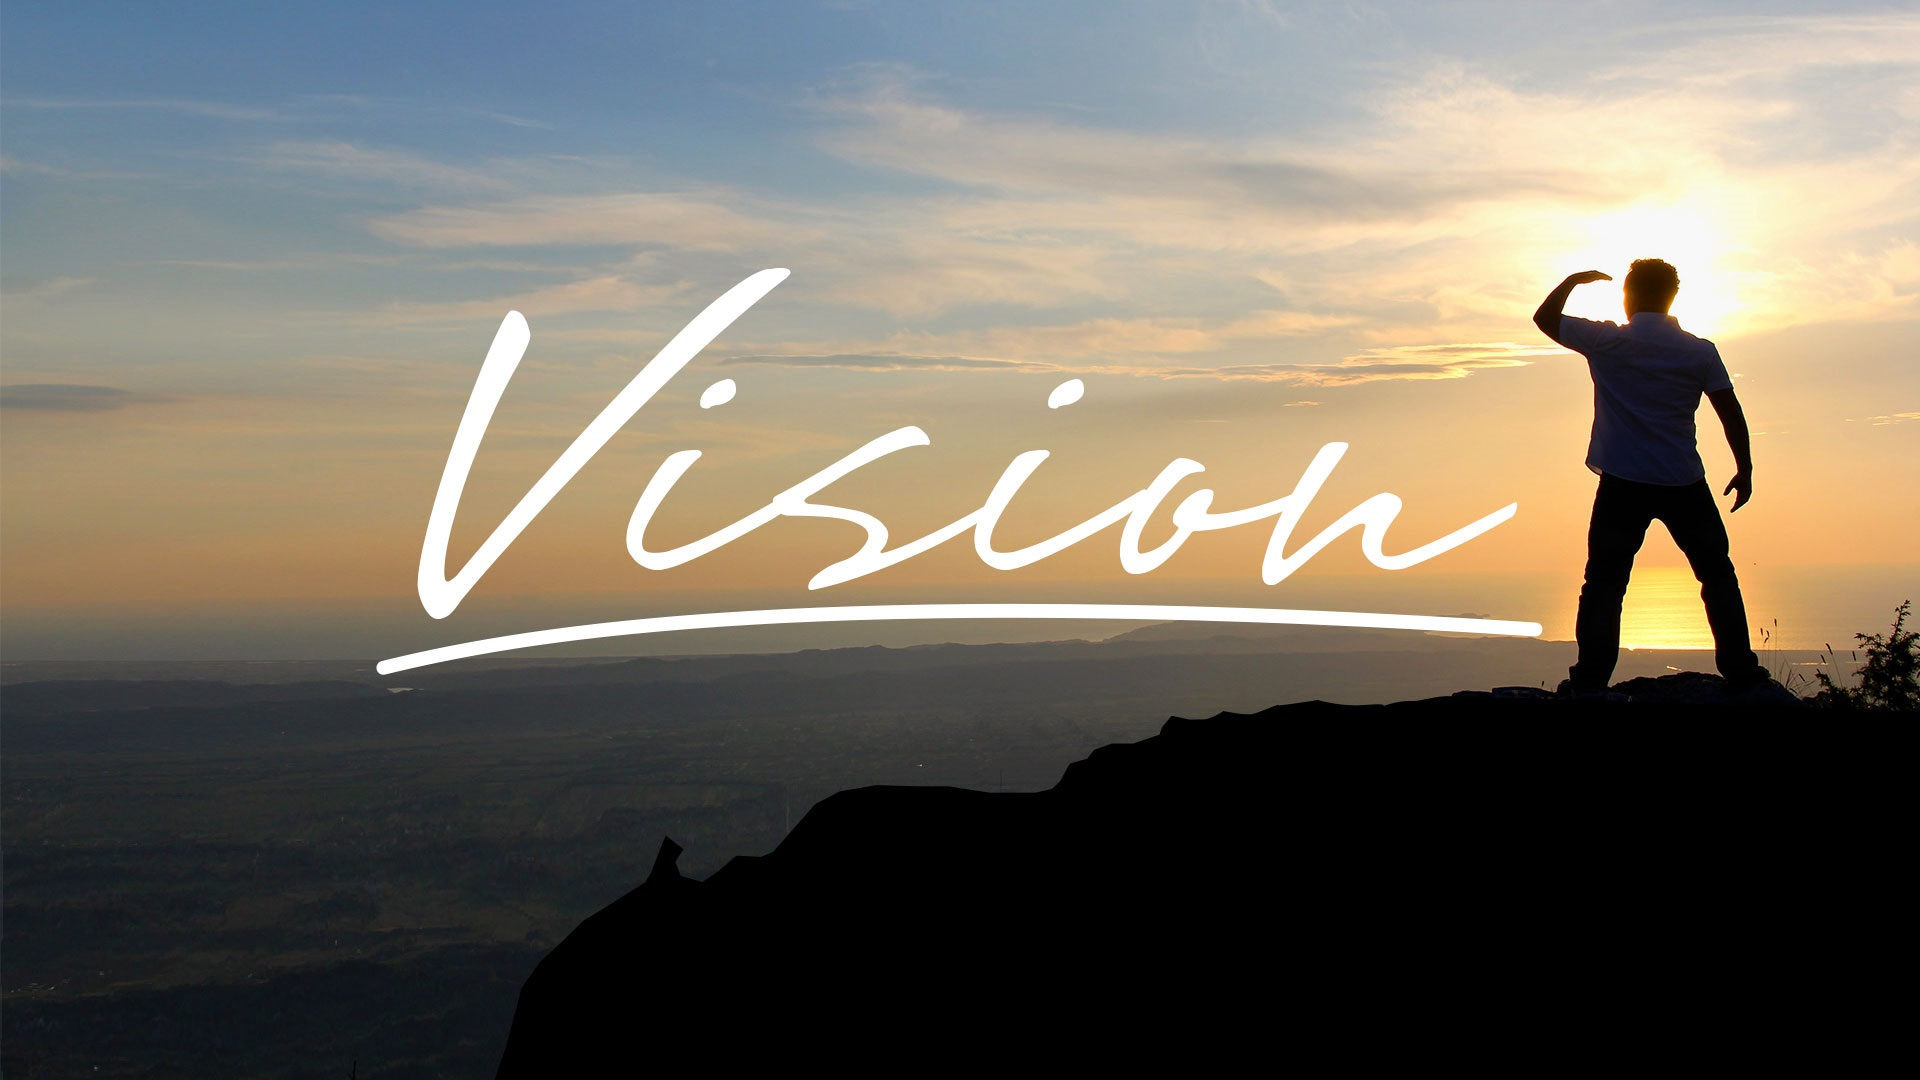 visionseries